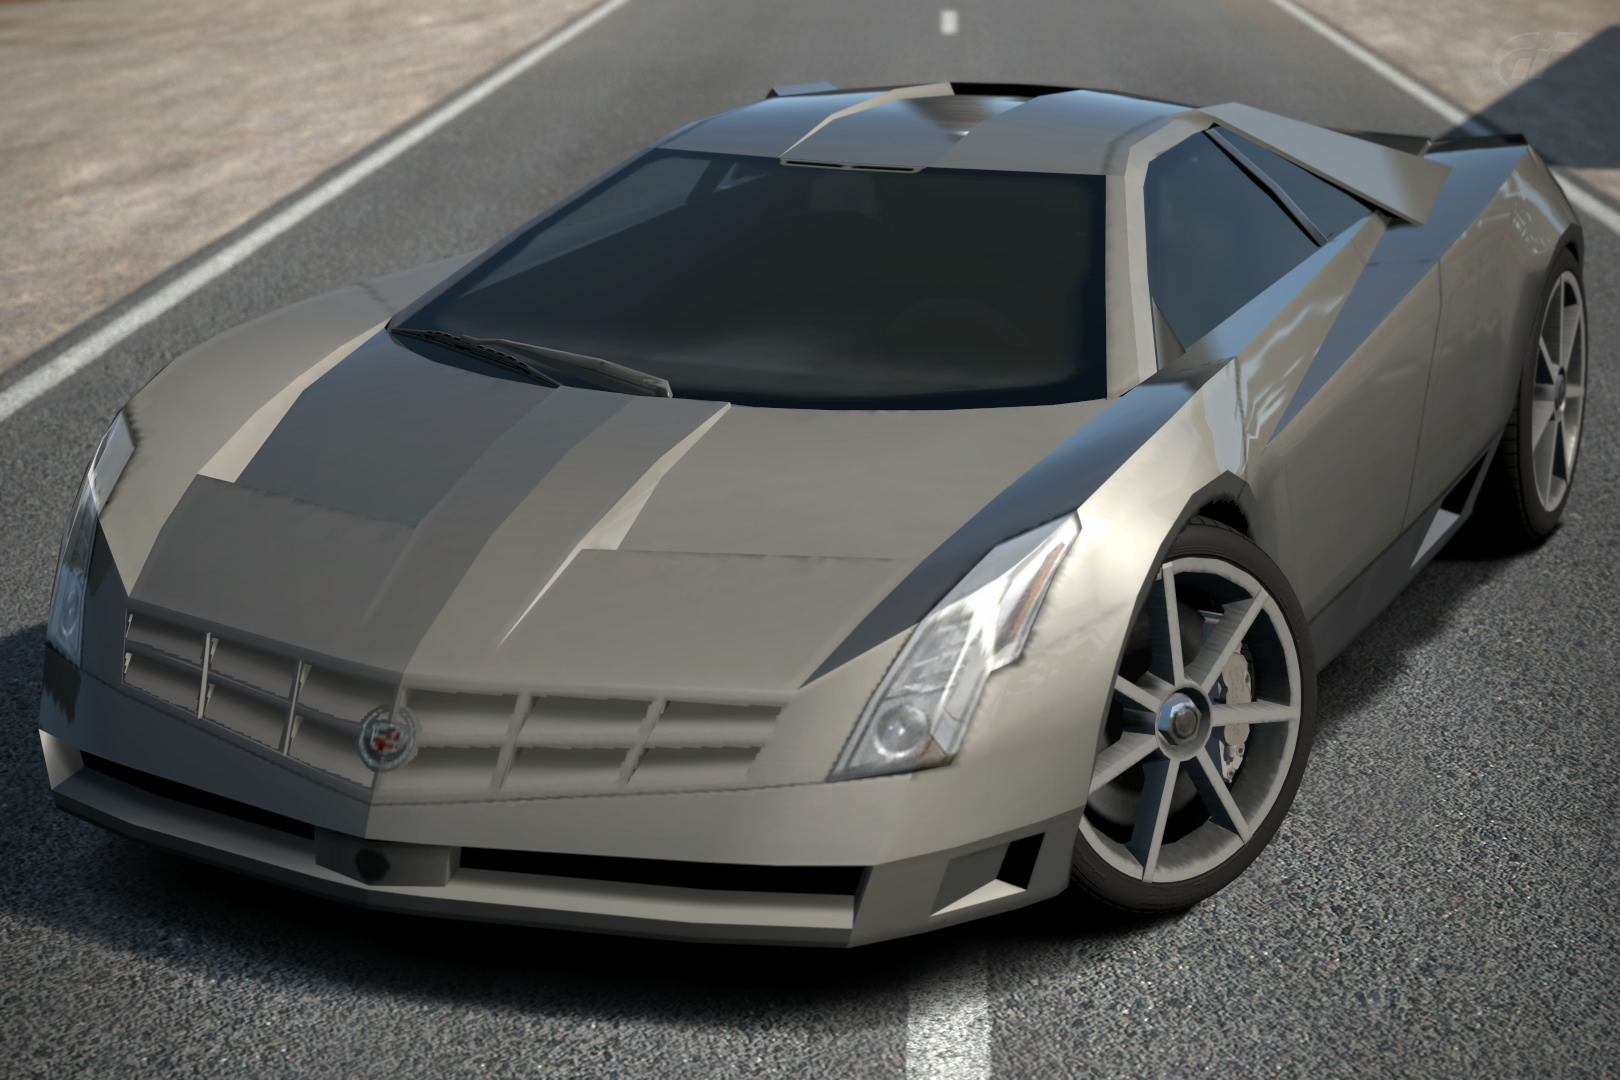 Cadillac Cien Concept 02 Gran Turismo Wiki Fandom Powered By Wikia